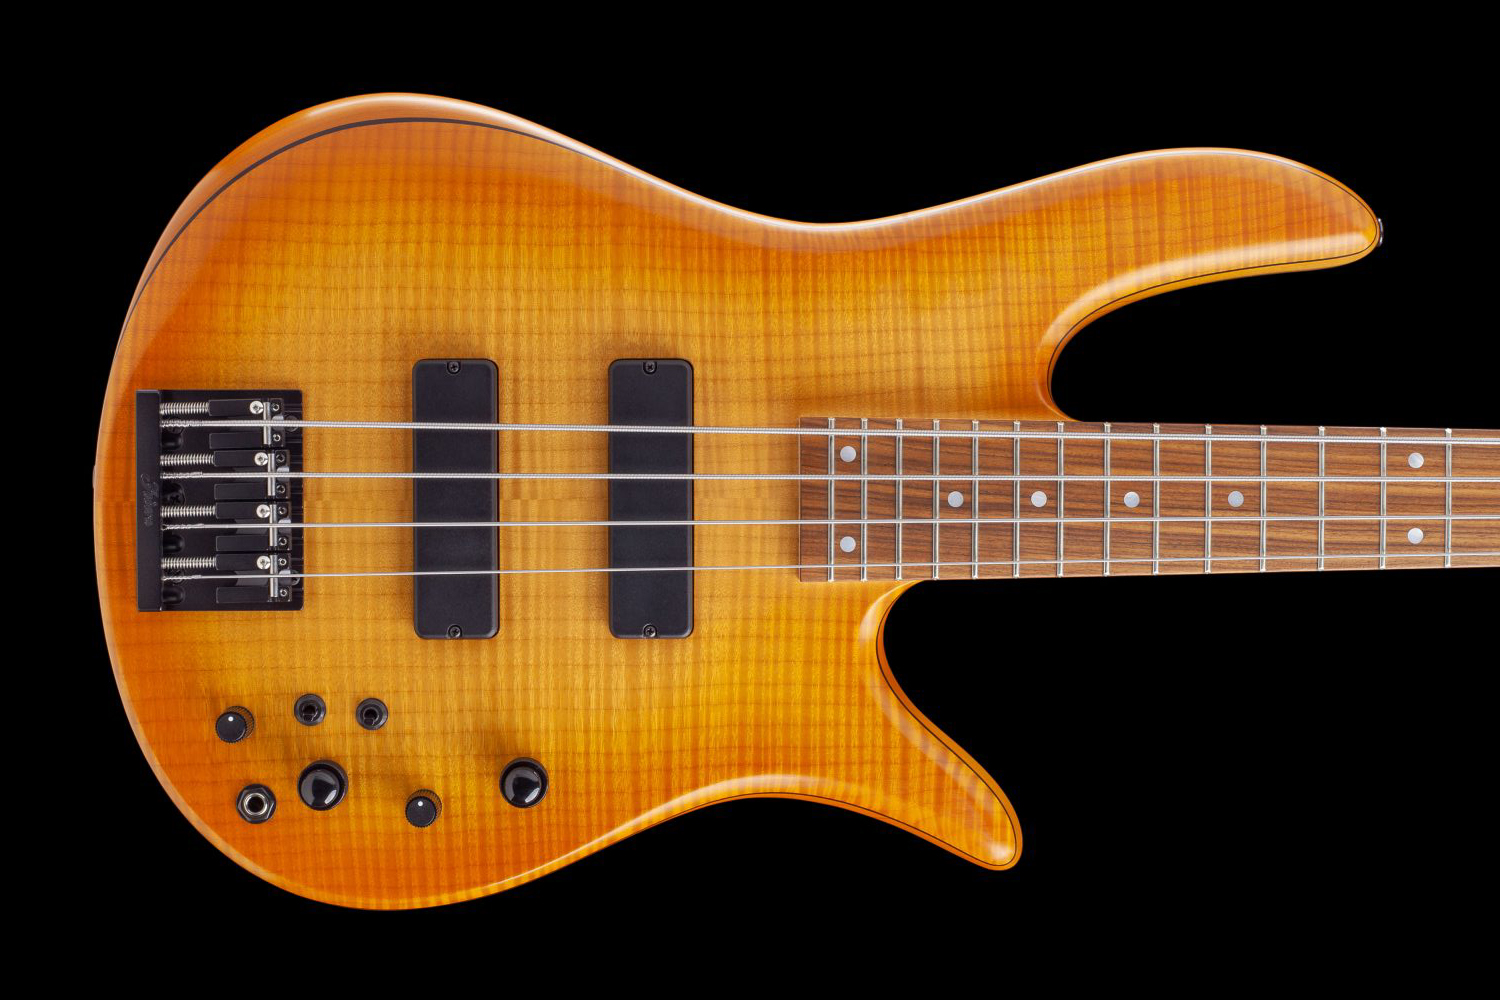 Fodera Announces the Select Series Basses